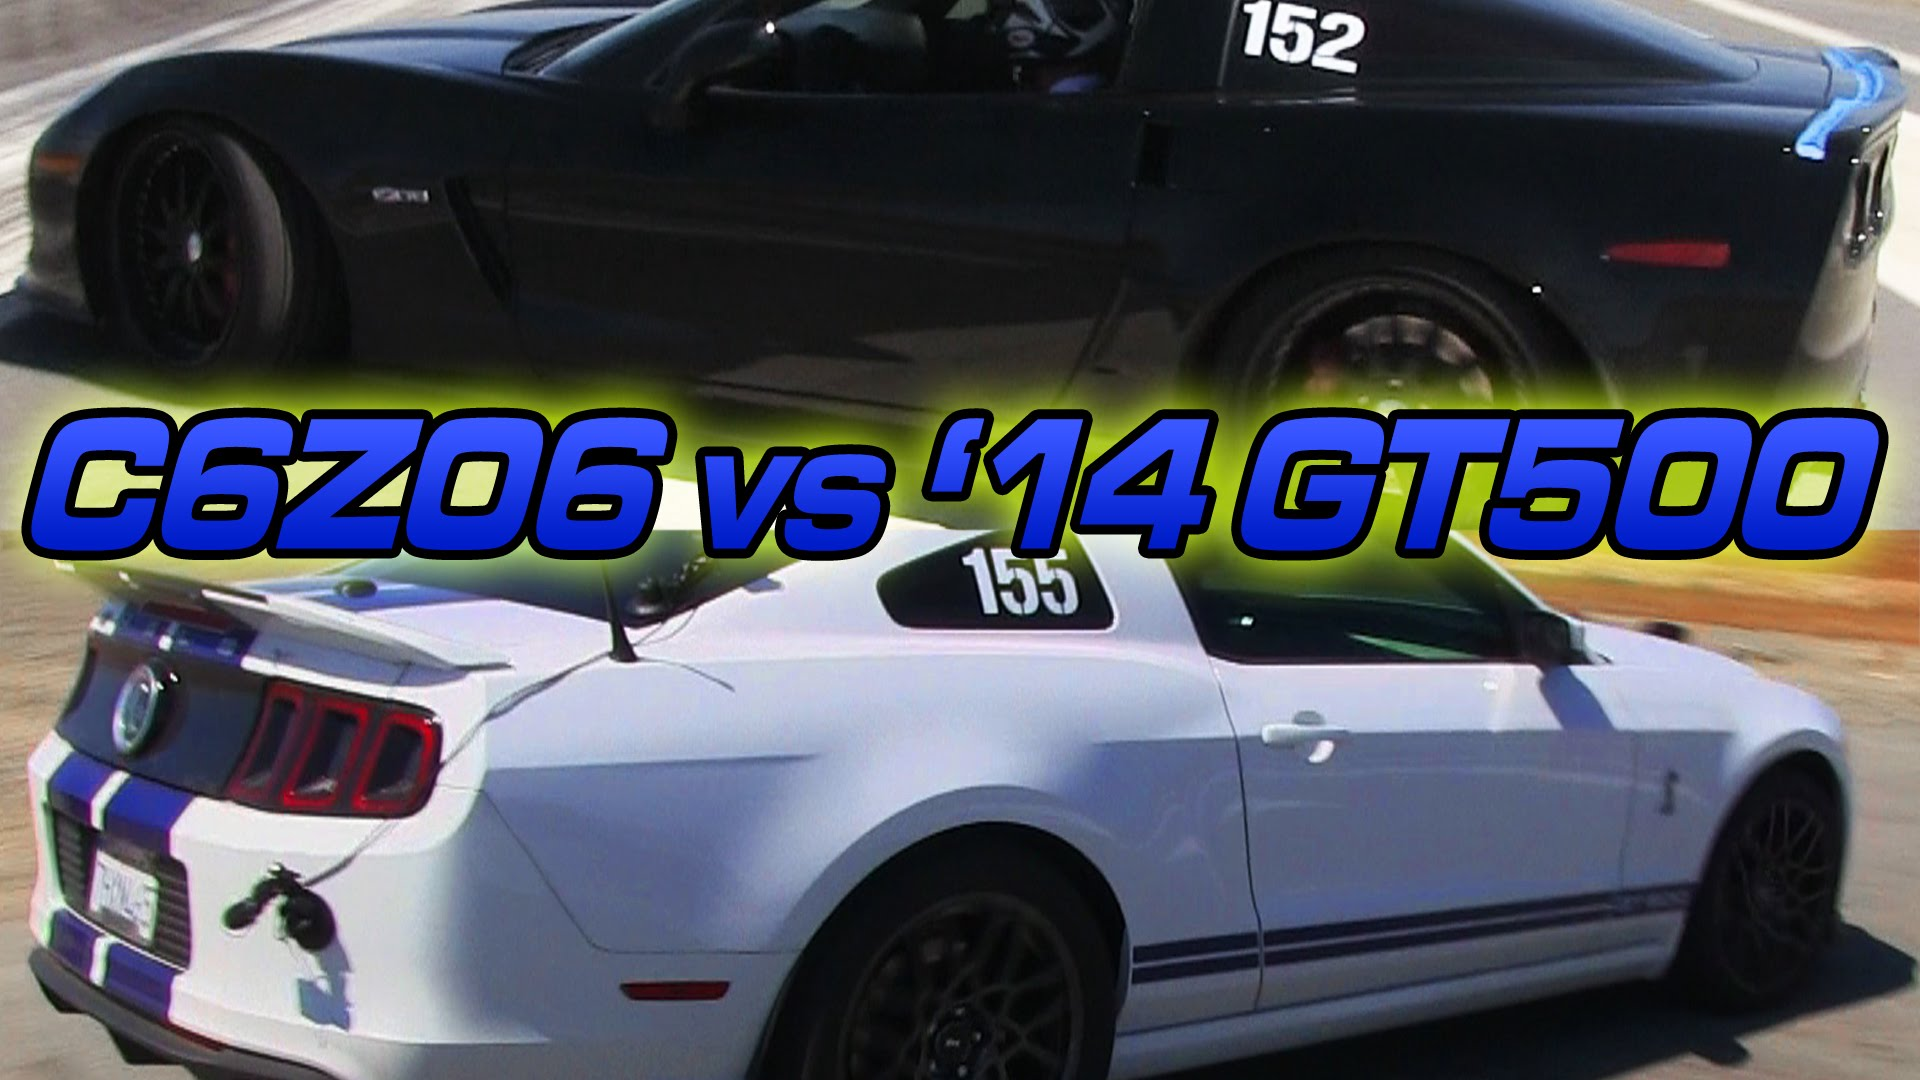 Airstrip Attack Corvette Z06 vs Mustang Shelby GT500